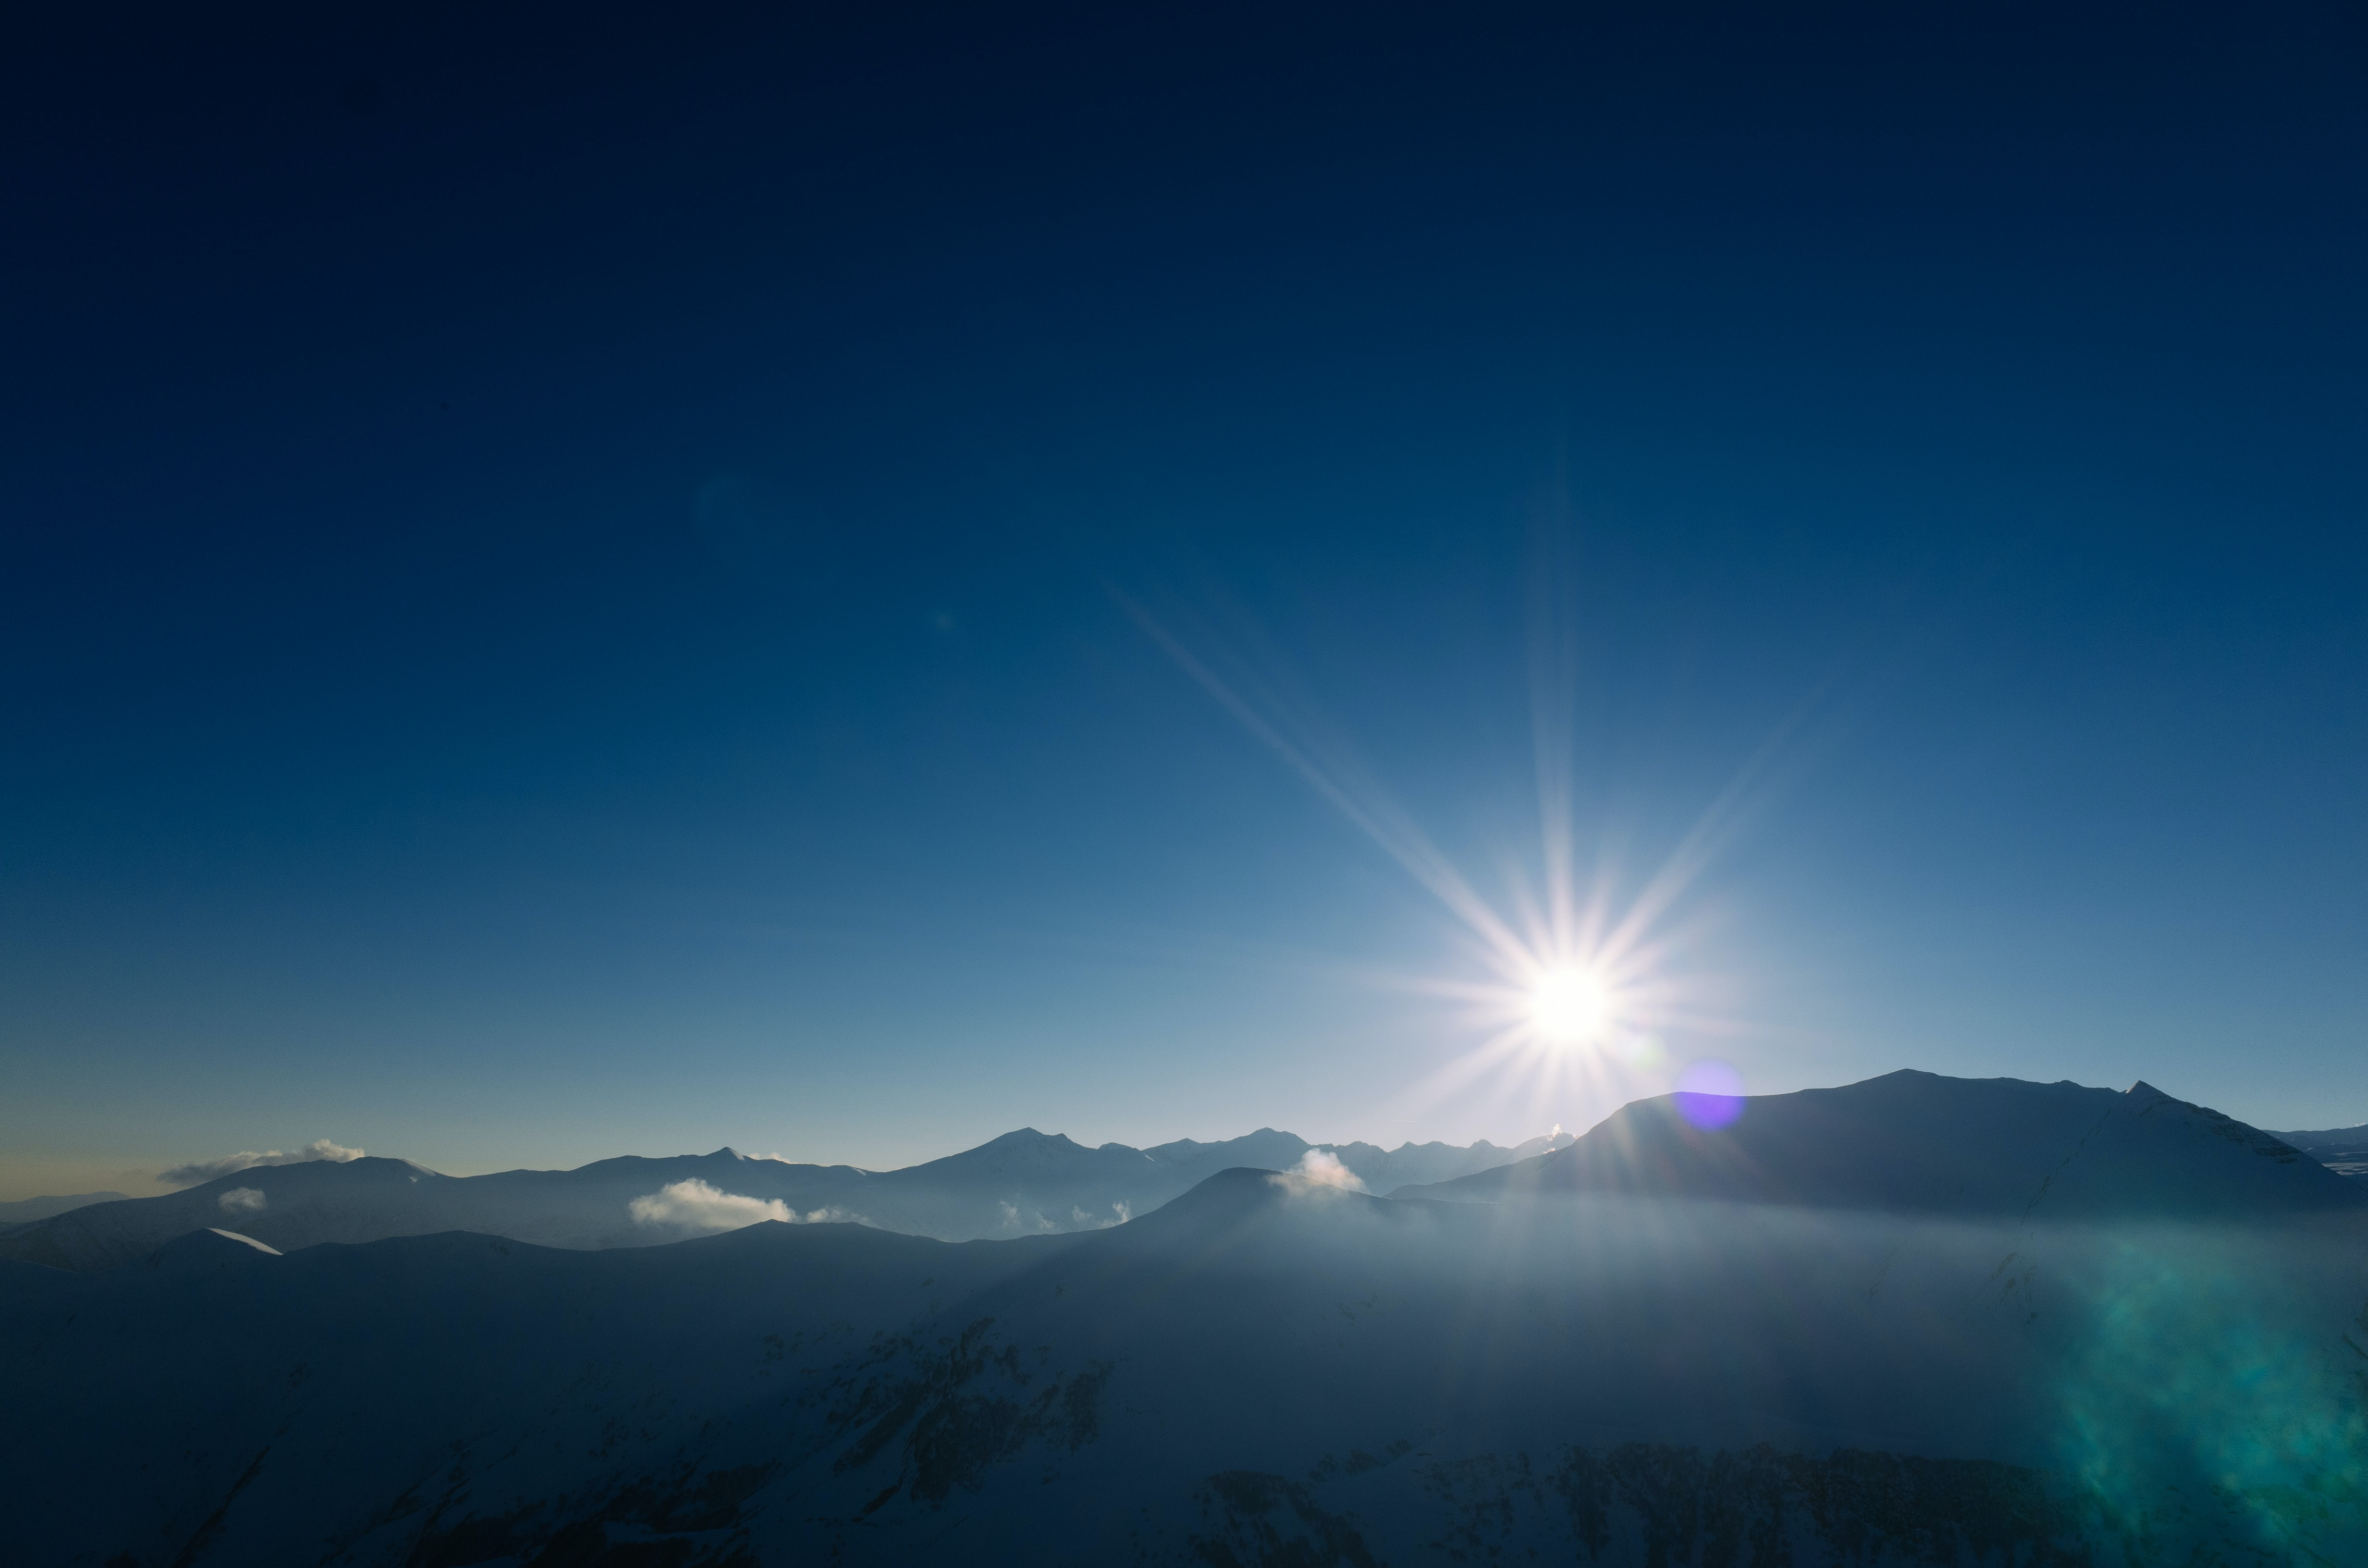 Sun rising above the silhouette of a mountain range